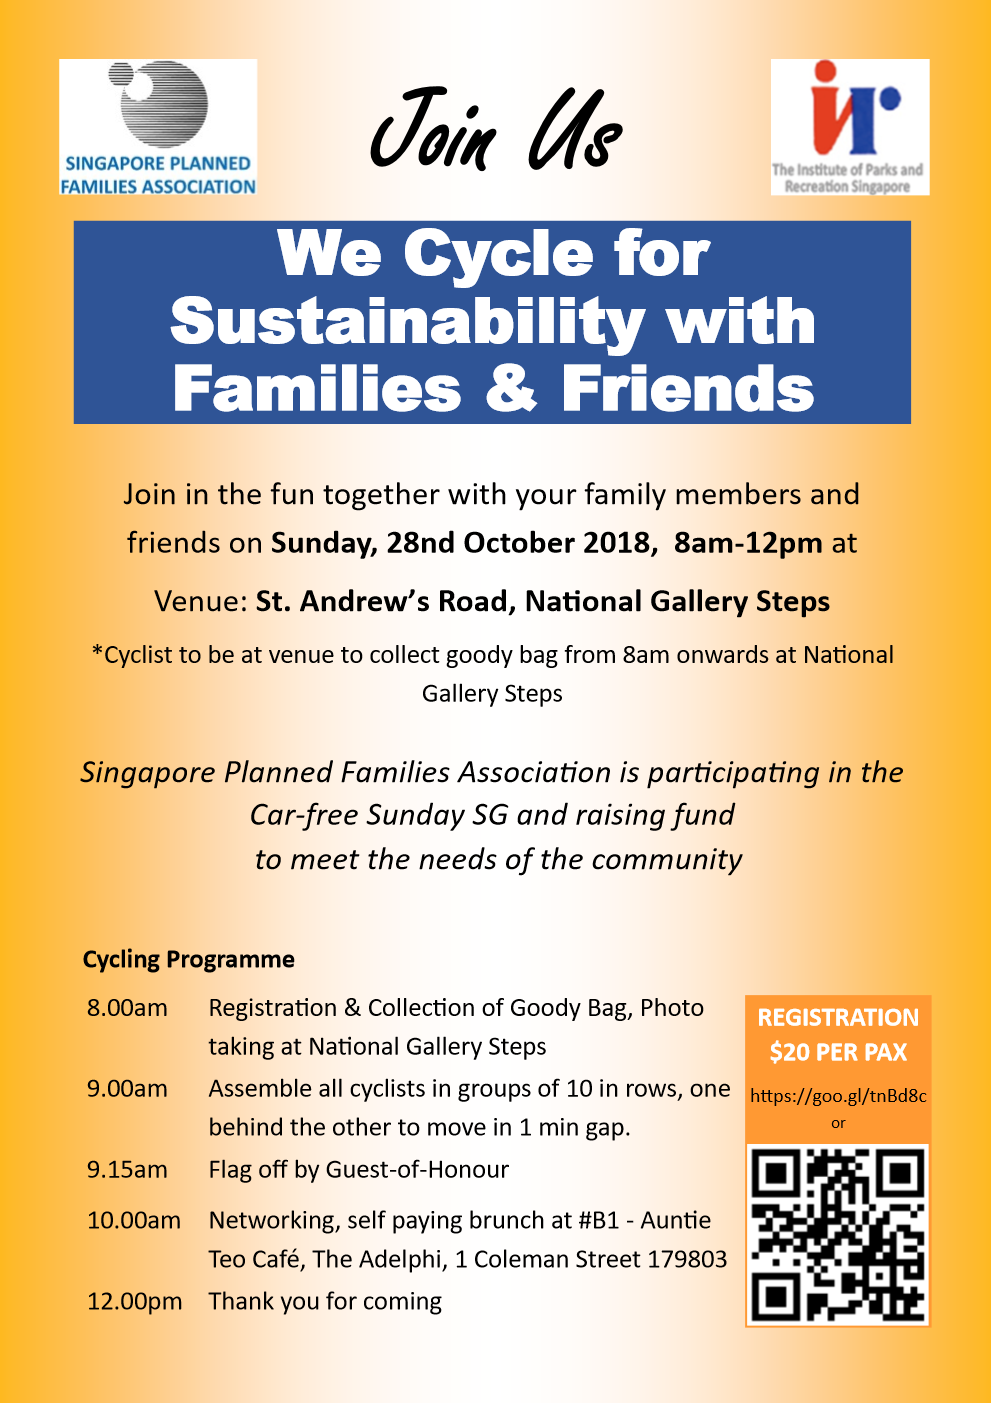 We Cycle for Sustainability with Families & Friends - Giving sg